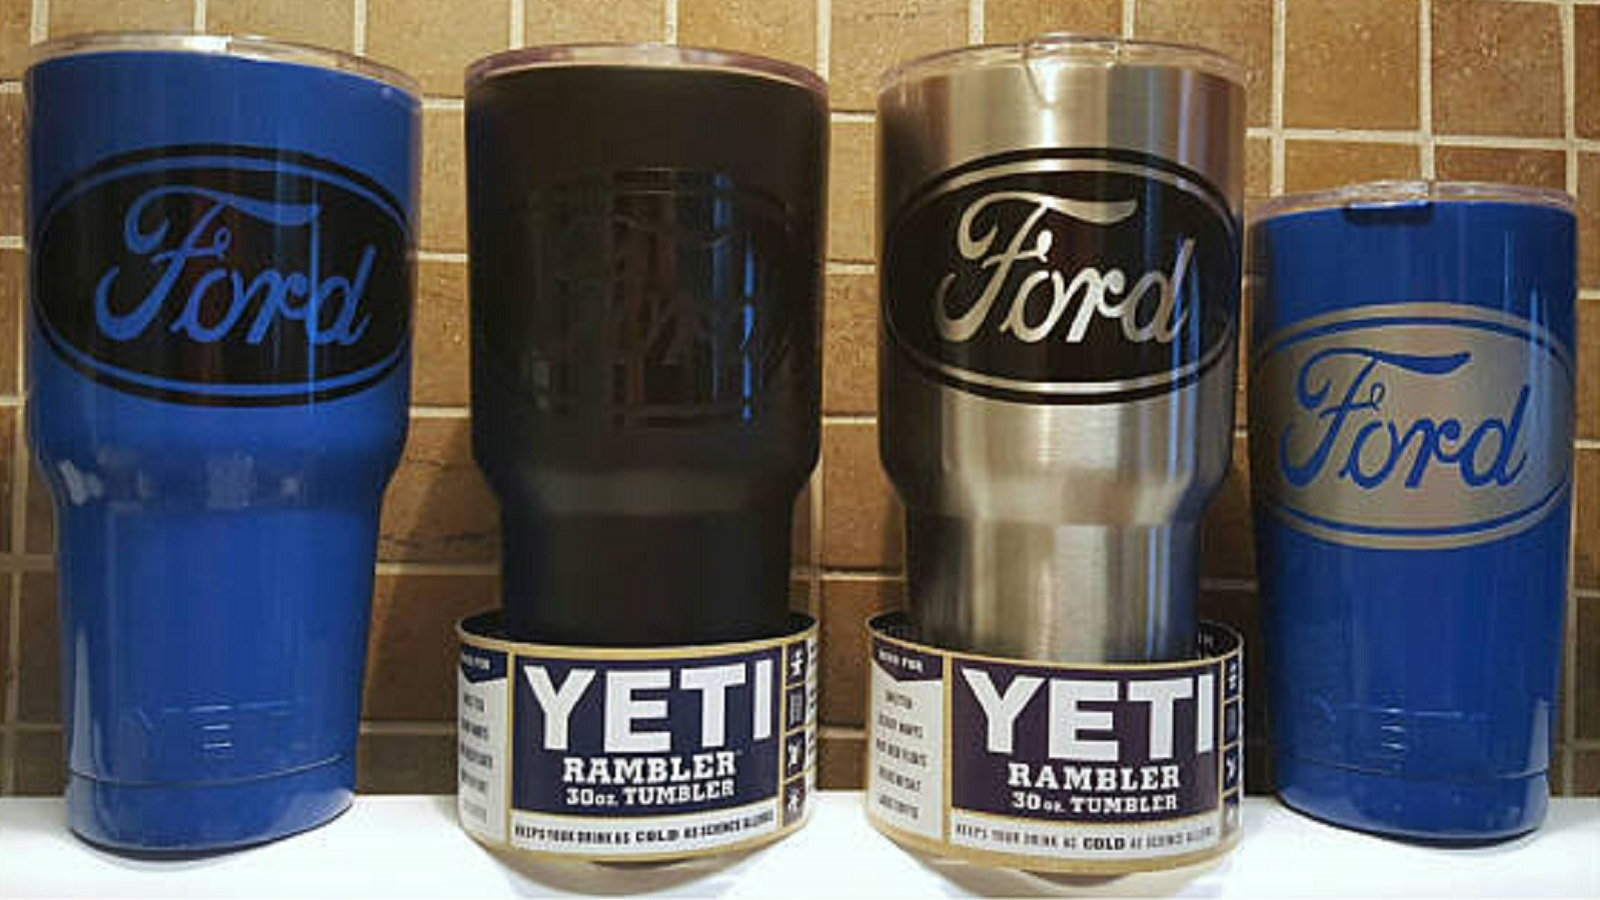 A Ford Yeti cup to keep his/her coffee hot longer.